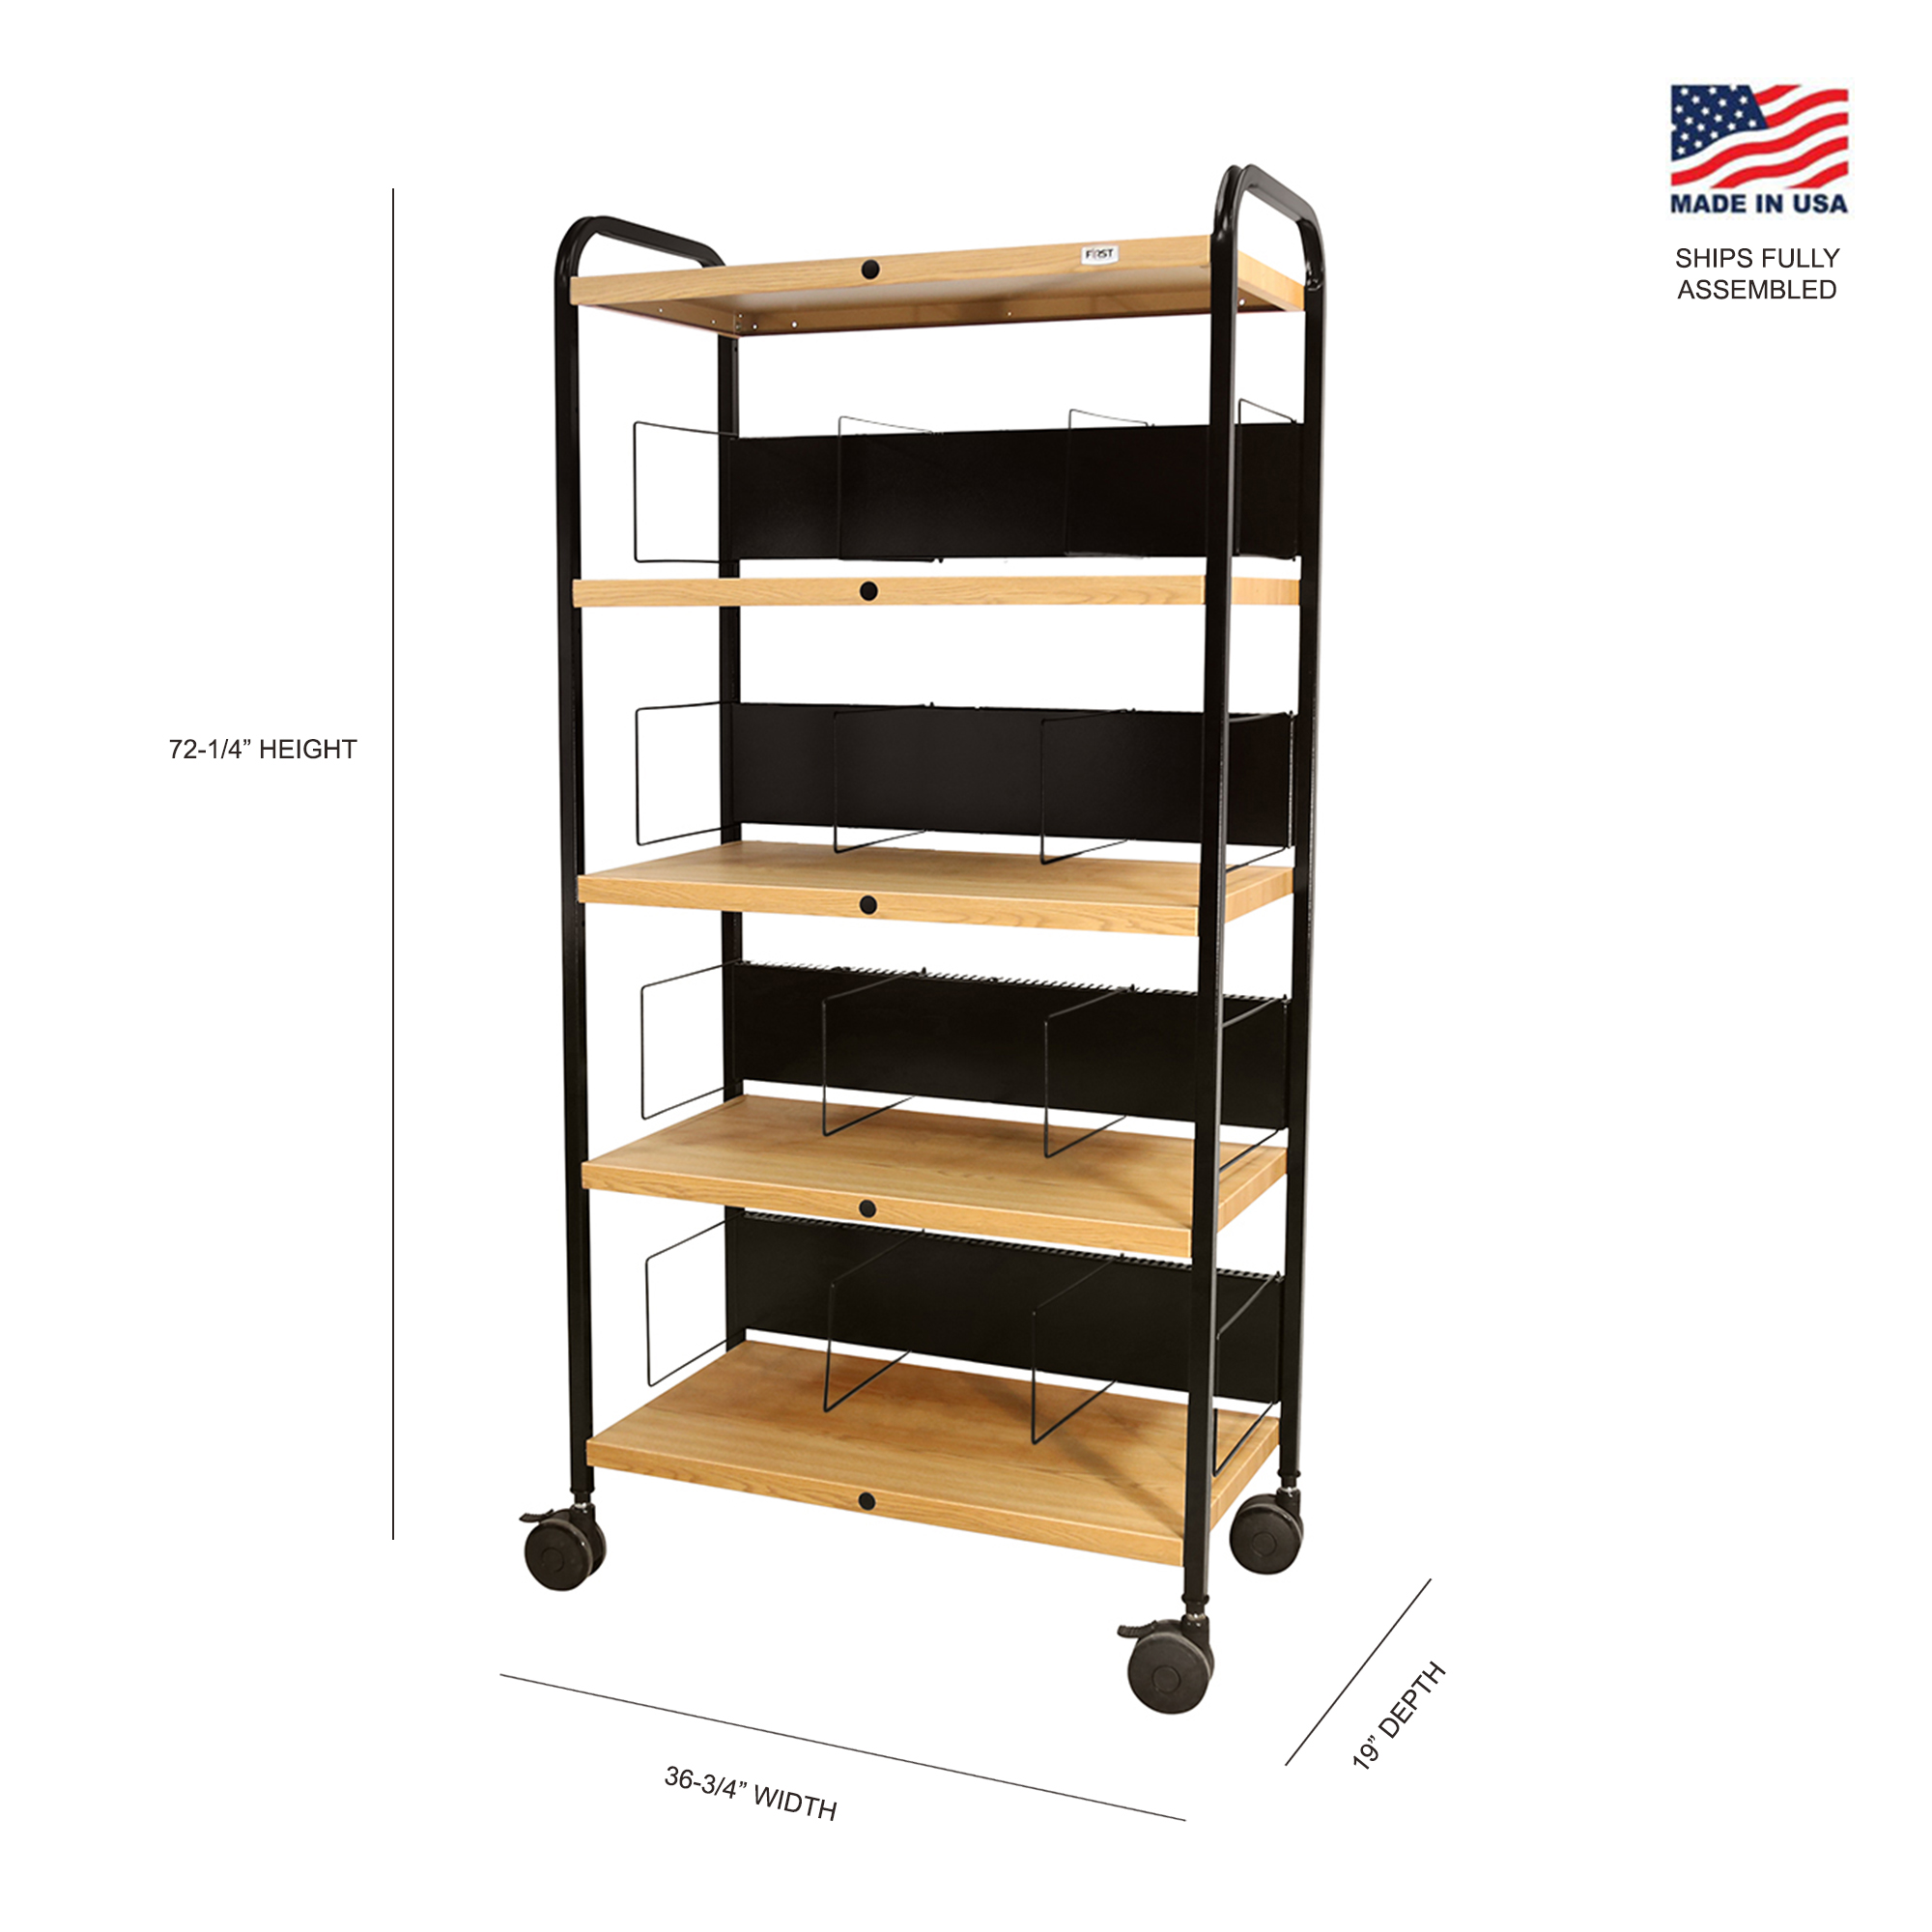 Mov-it Elite chart Rack: Series I